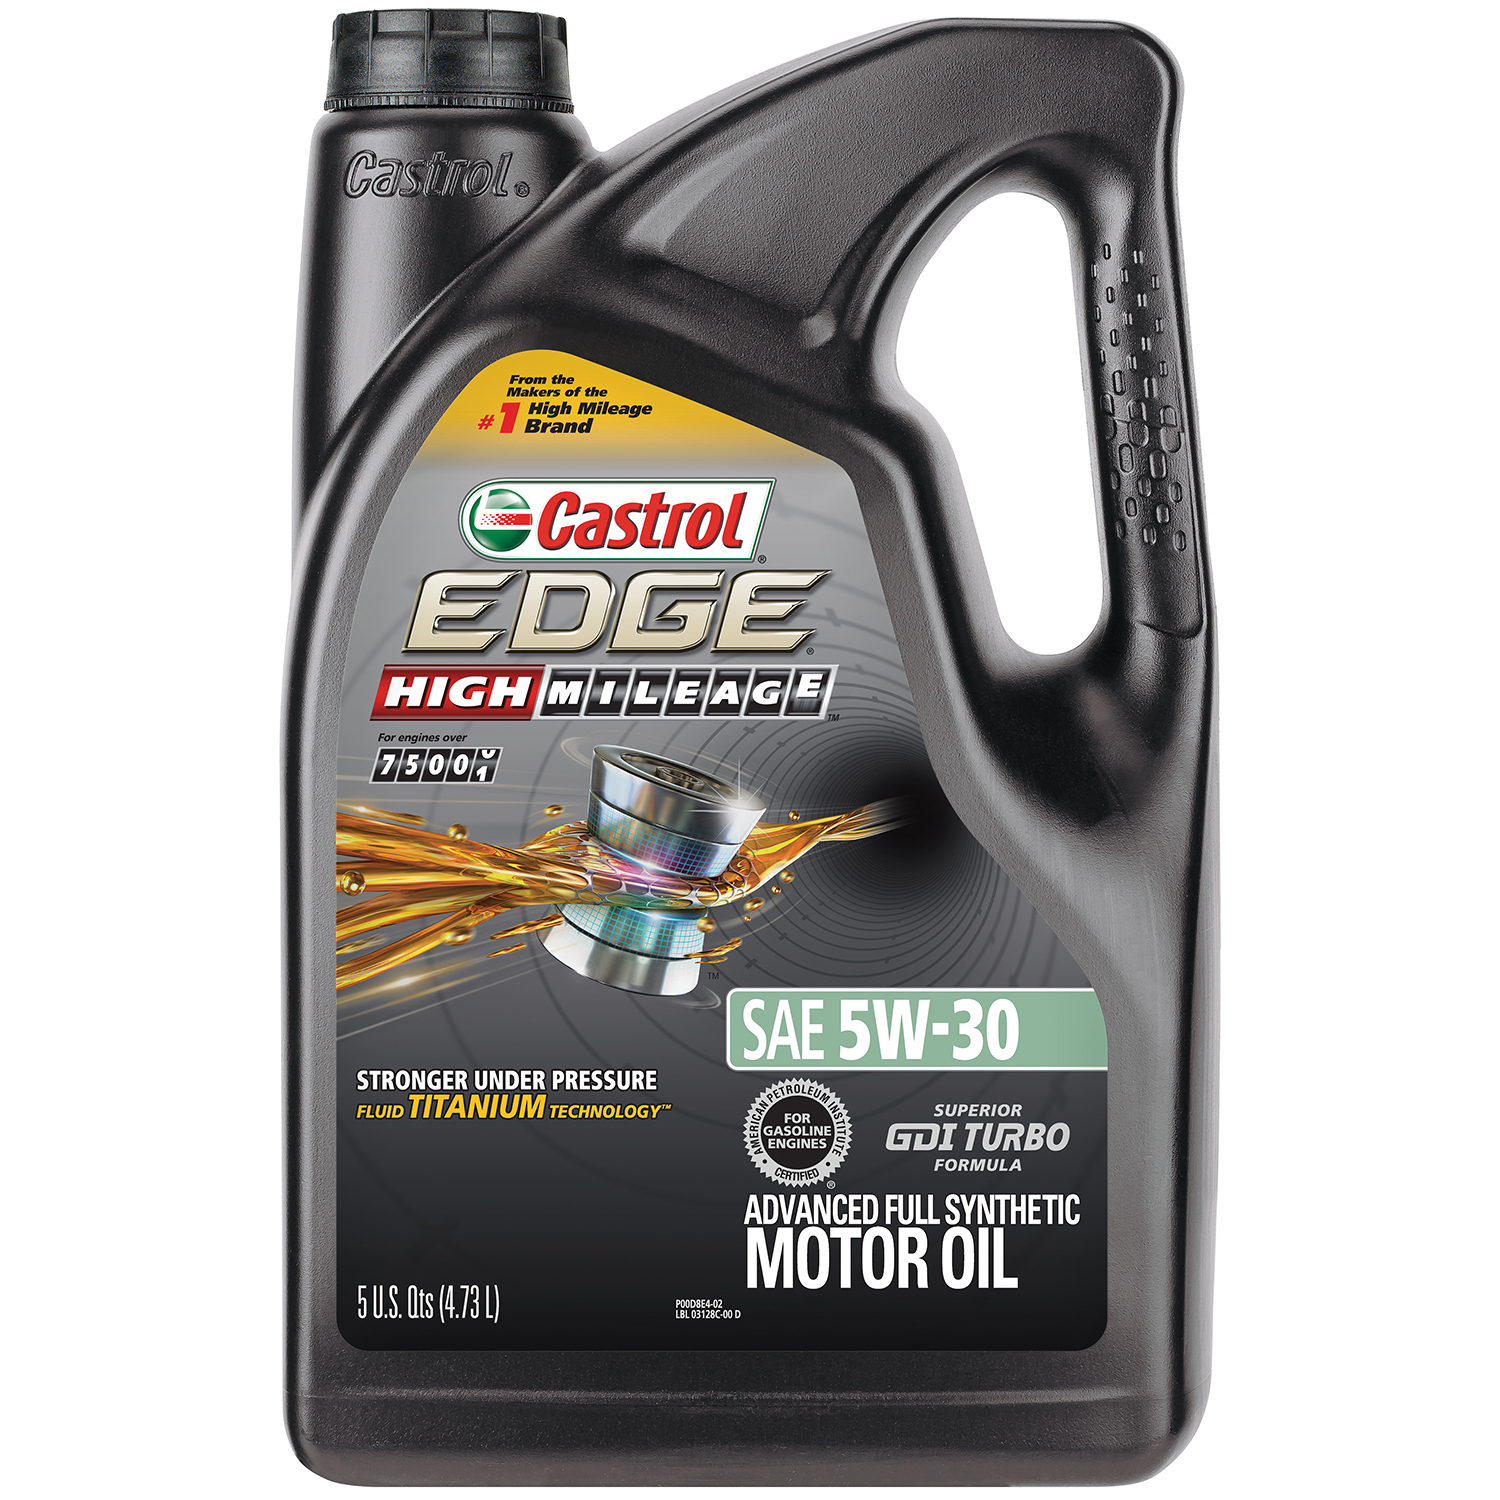 Castrol EDGE High Mileage 5W-30 Advanced Full Synthetic Motor Oil, 5 QT